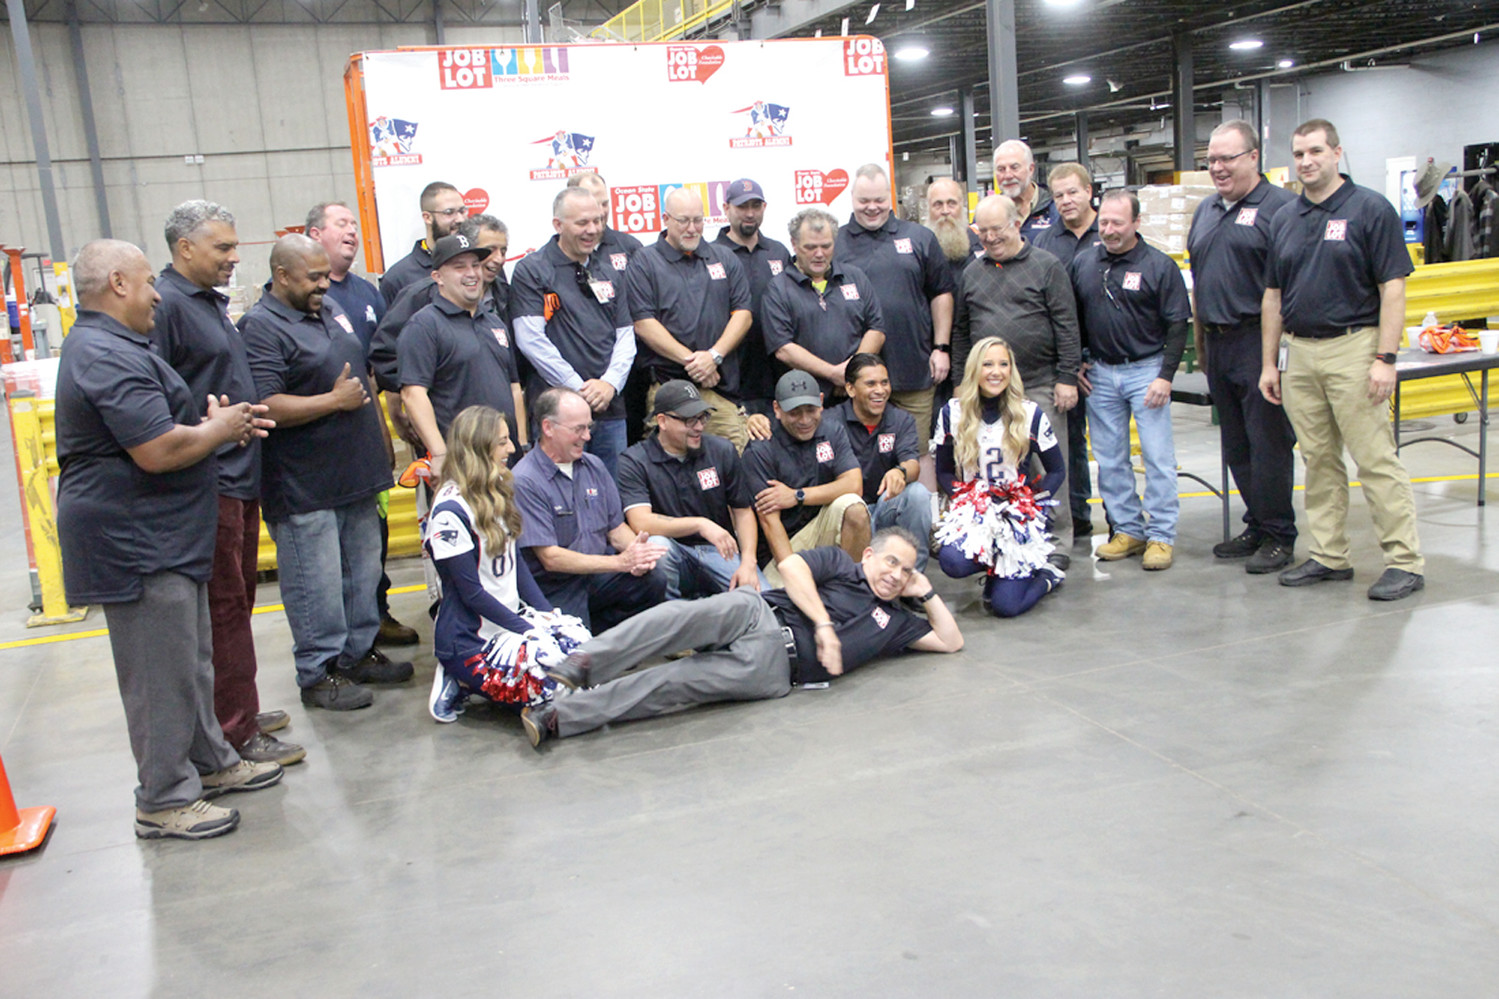 WAREHOUSE OF SUPPORT: Job Lot employees, vendors of the company and invited guests at the kickoff to the Three Square Meals program Wednesday.